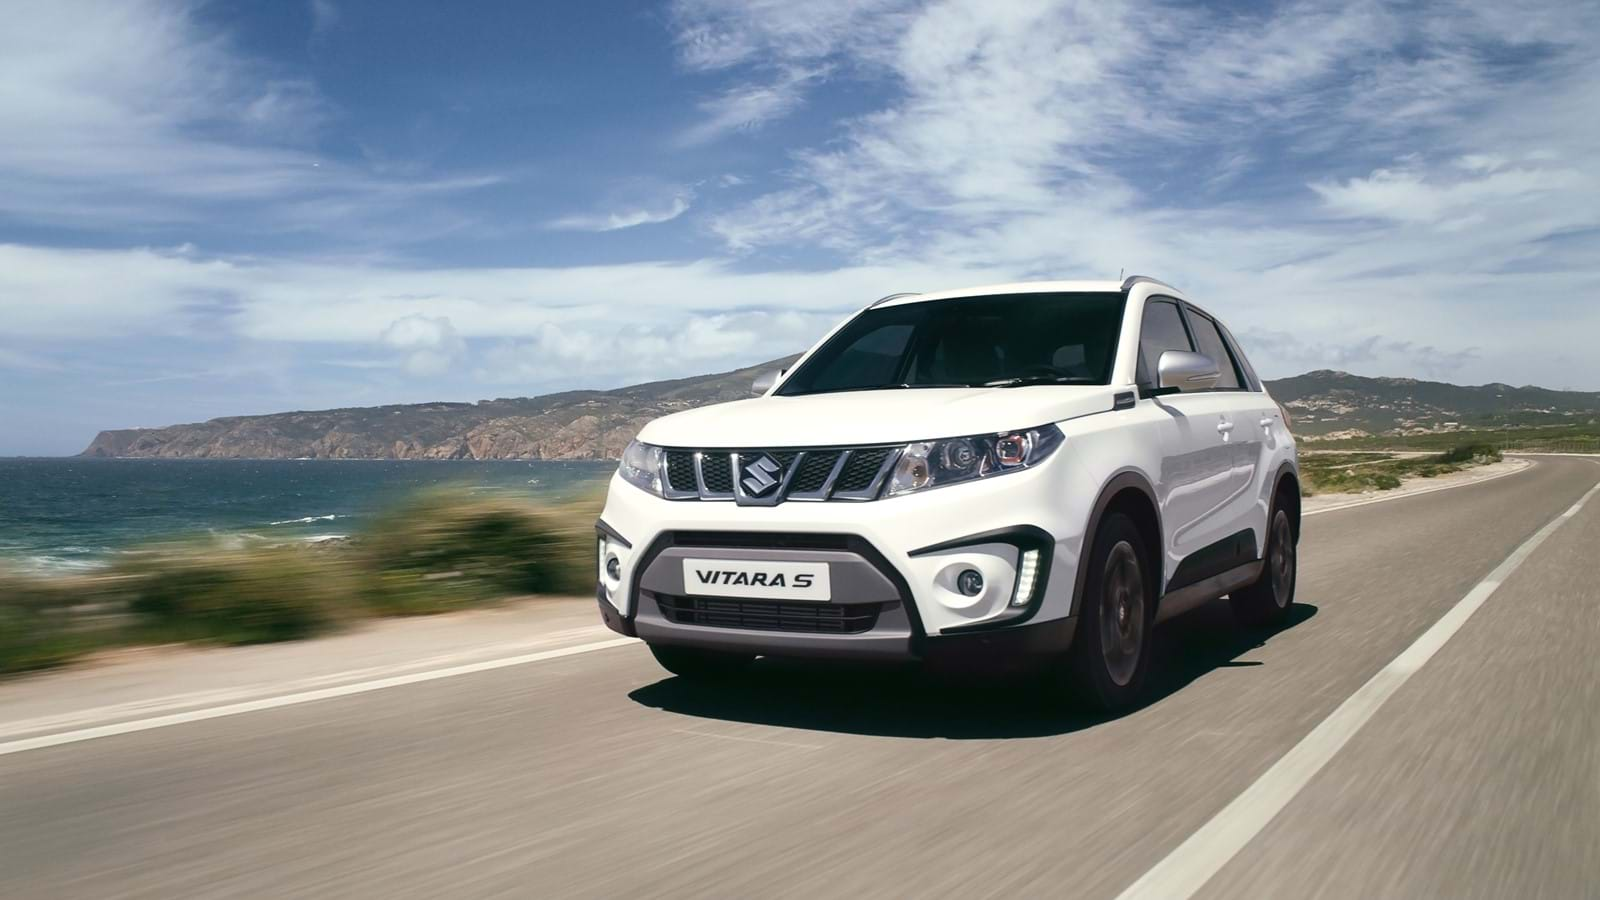 Vitara driving on a coastal road